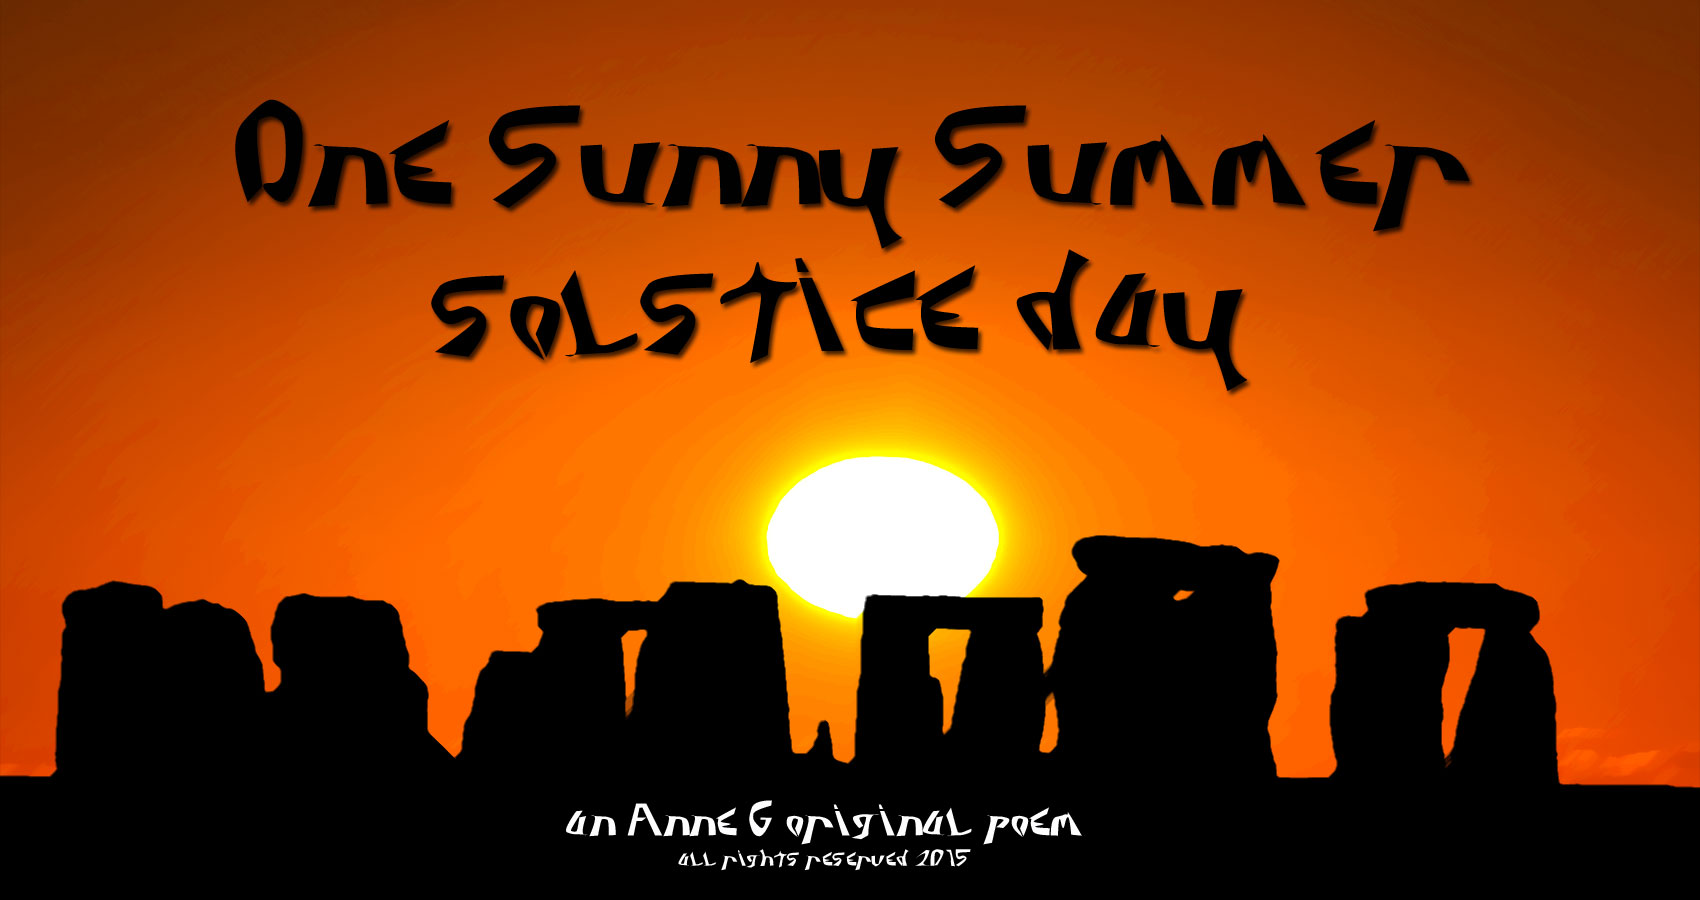 One Sunny Summer Solstice Day a spillwords original poem by Anne G